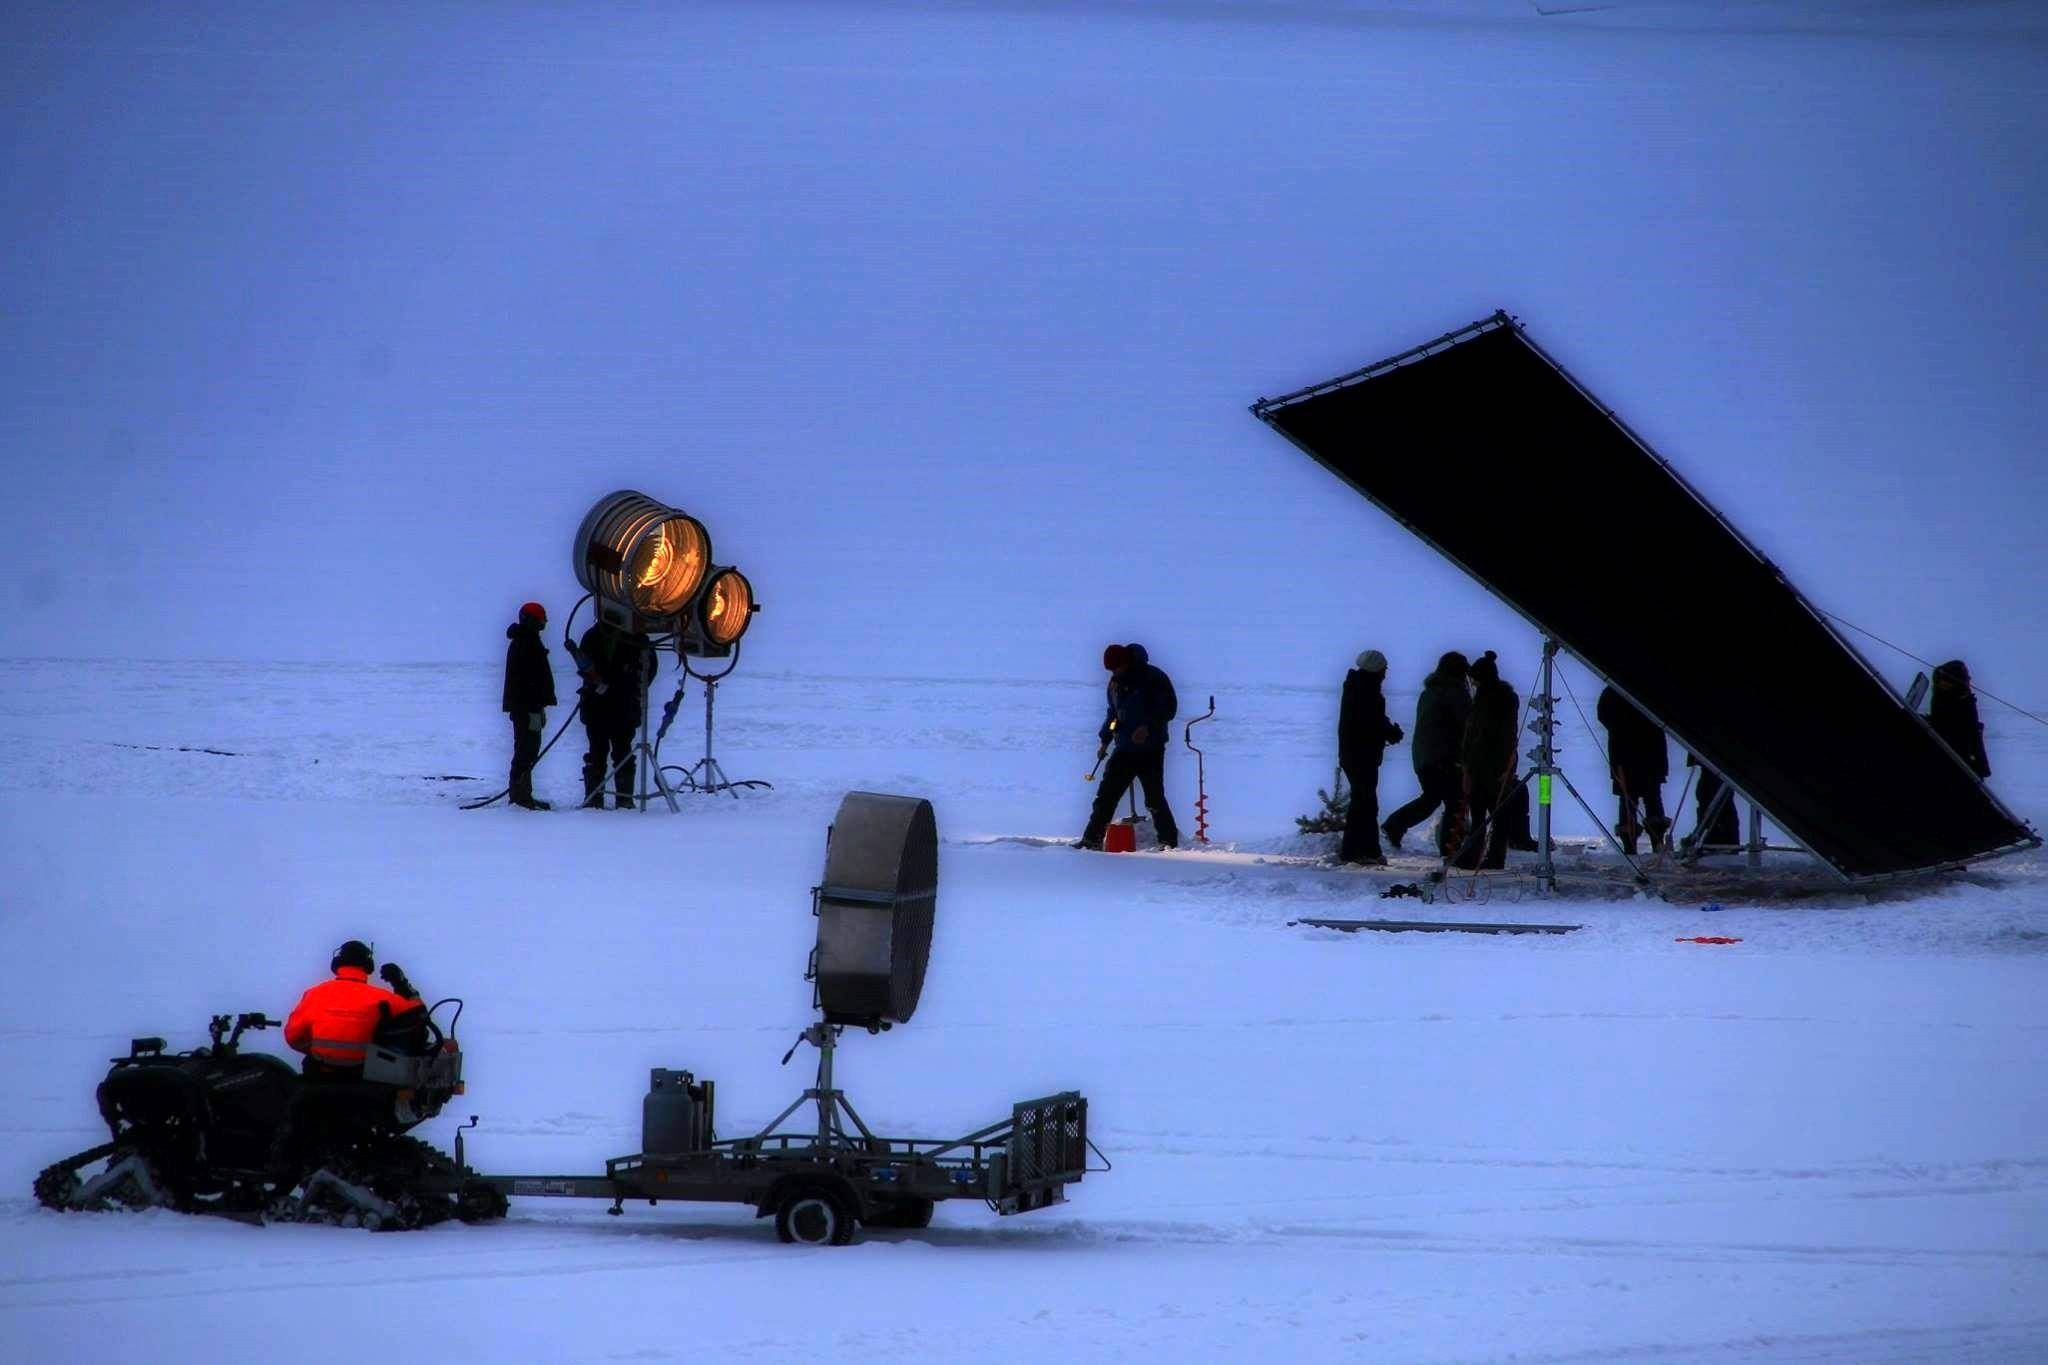 """March 10: Film crew on ice at Tinnsjø where they will film a car going through the ice at dusk, the """"blue hour"""" that Alfredson is a fan of. The crew mounted a mobile camera to the front of a Mercedes-Benz SUV. Eventually, the red Volvos will be driving on the slippery ice. Photo by Hans-Dieter Fleger http://radiorjukan.no/nyheter/696/hollywood-pa-tinnsjoisen-glatta/"""